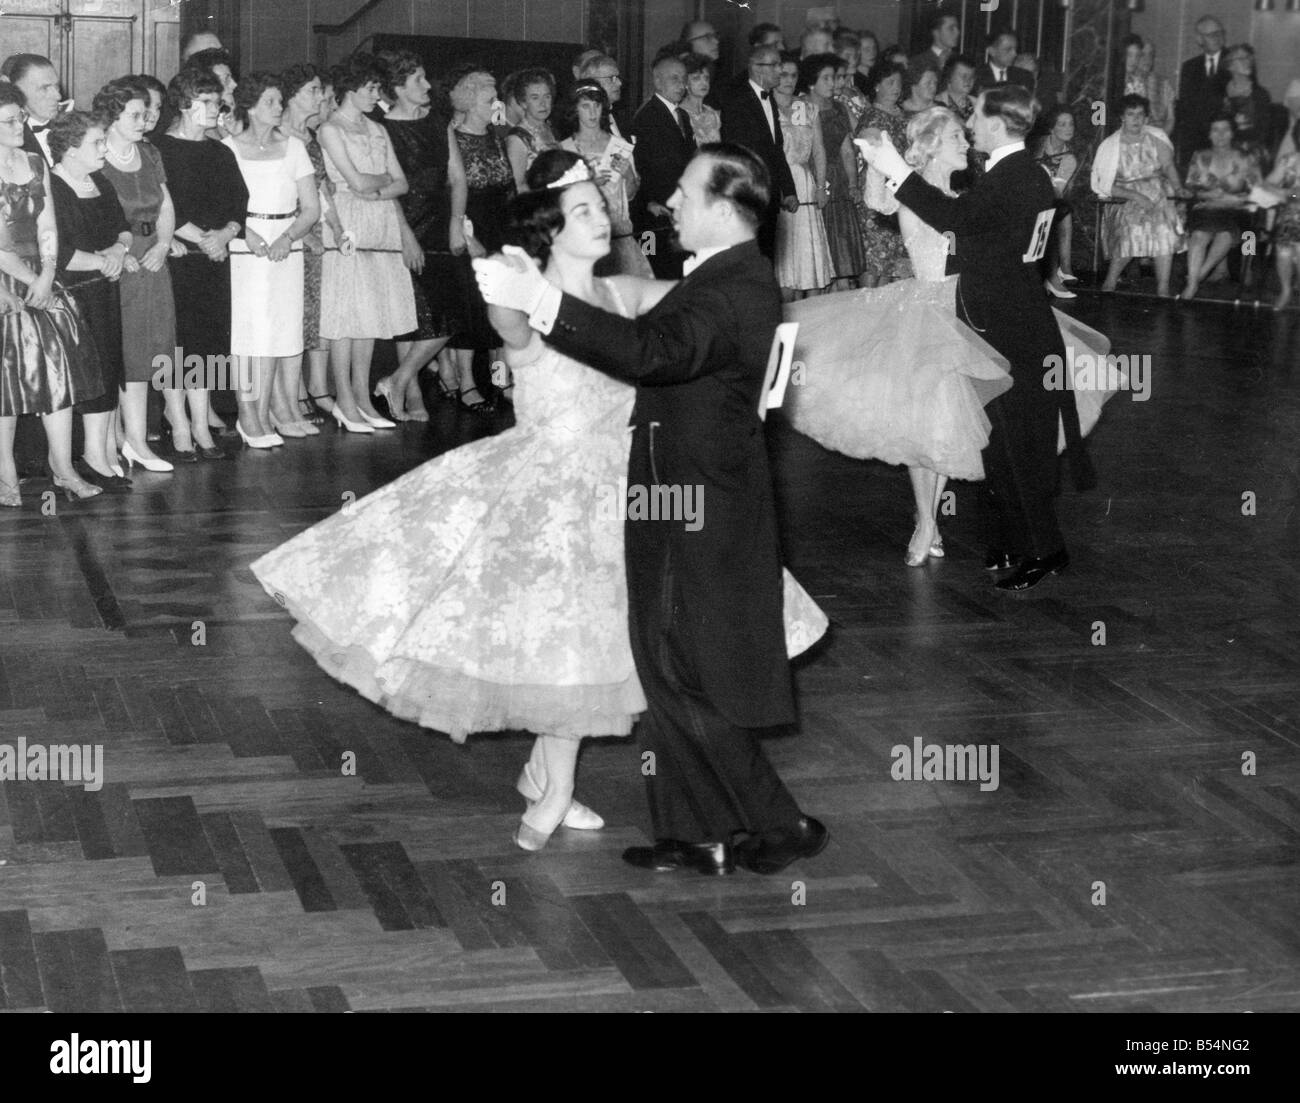 A Group Of Ballroom Dancing Couples In Old Time Dance Competition